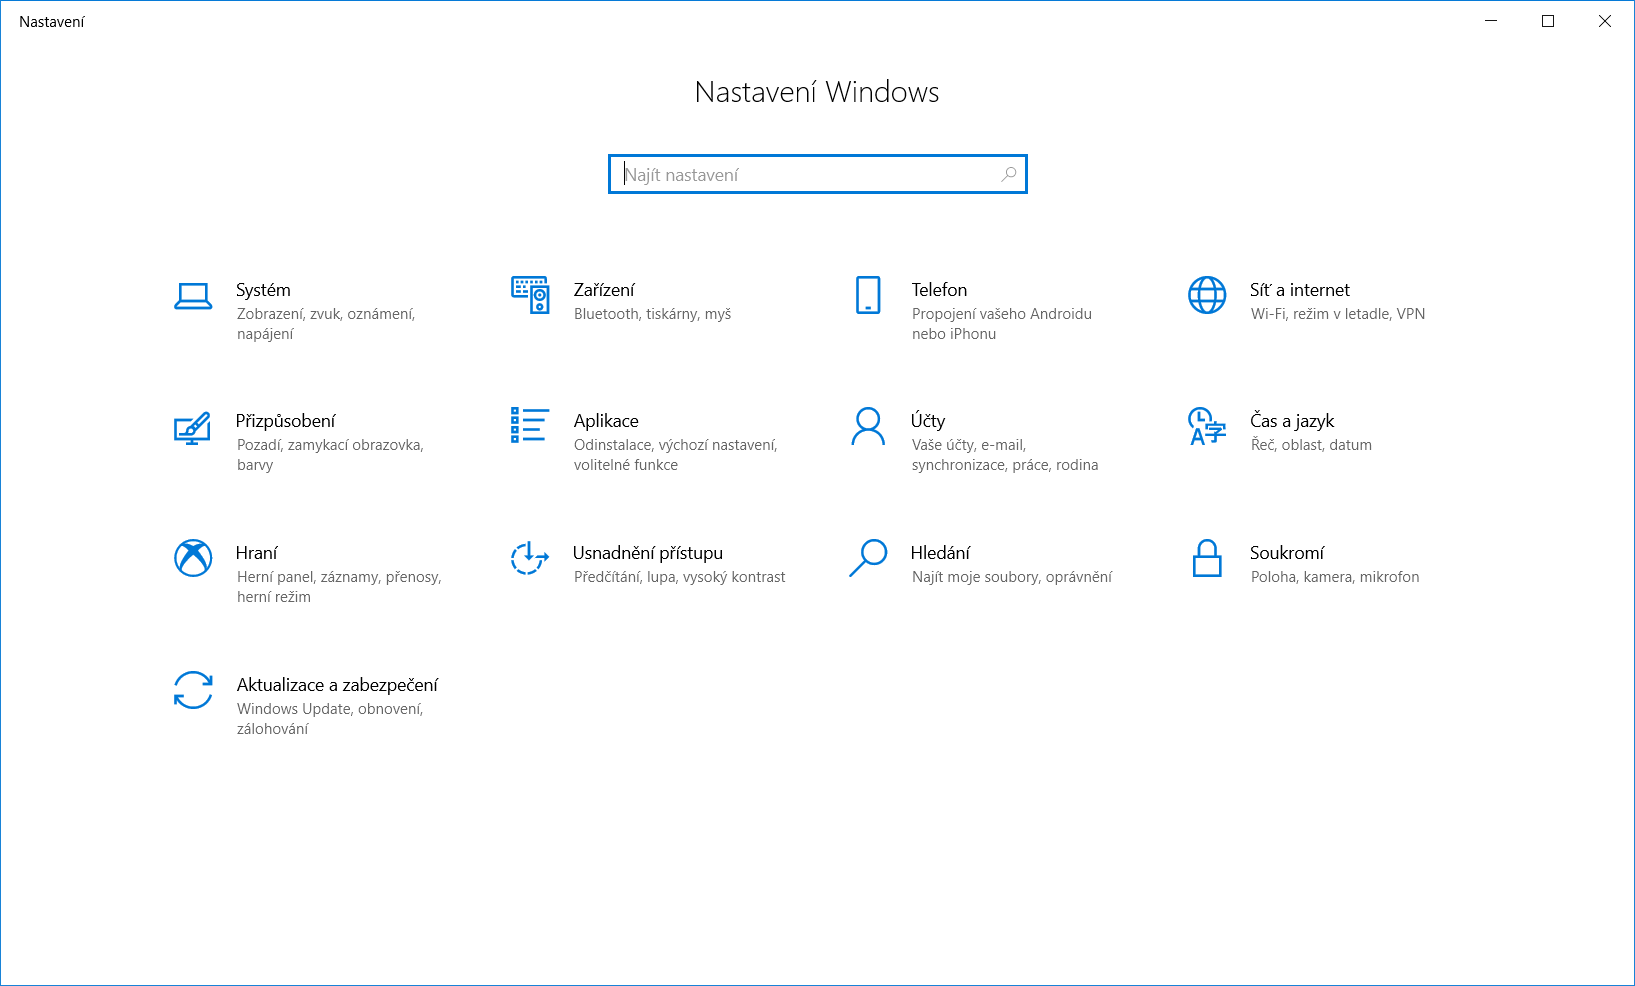 Windows 10 Insider Preview build 18351 4